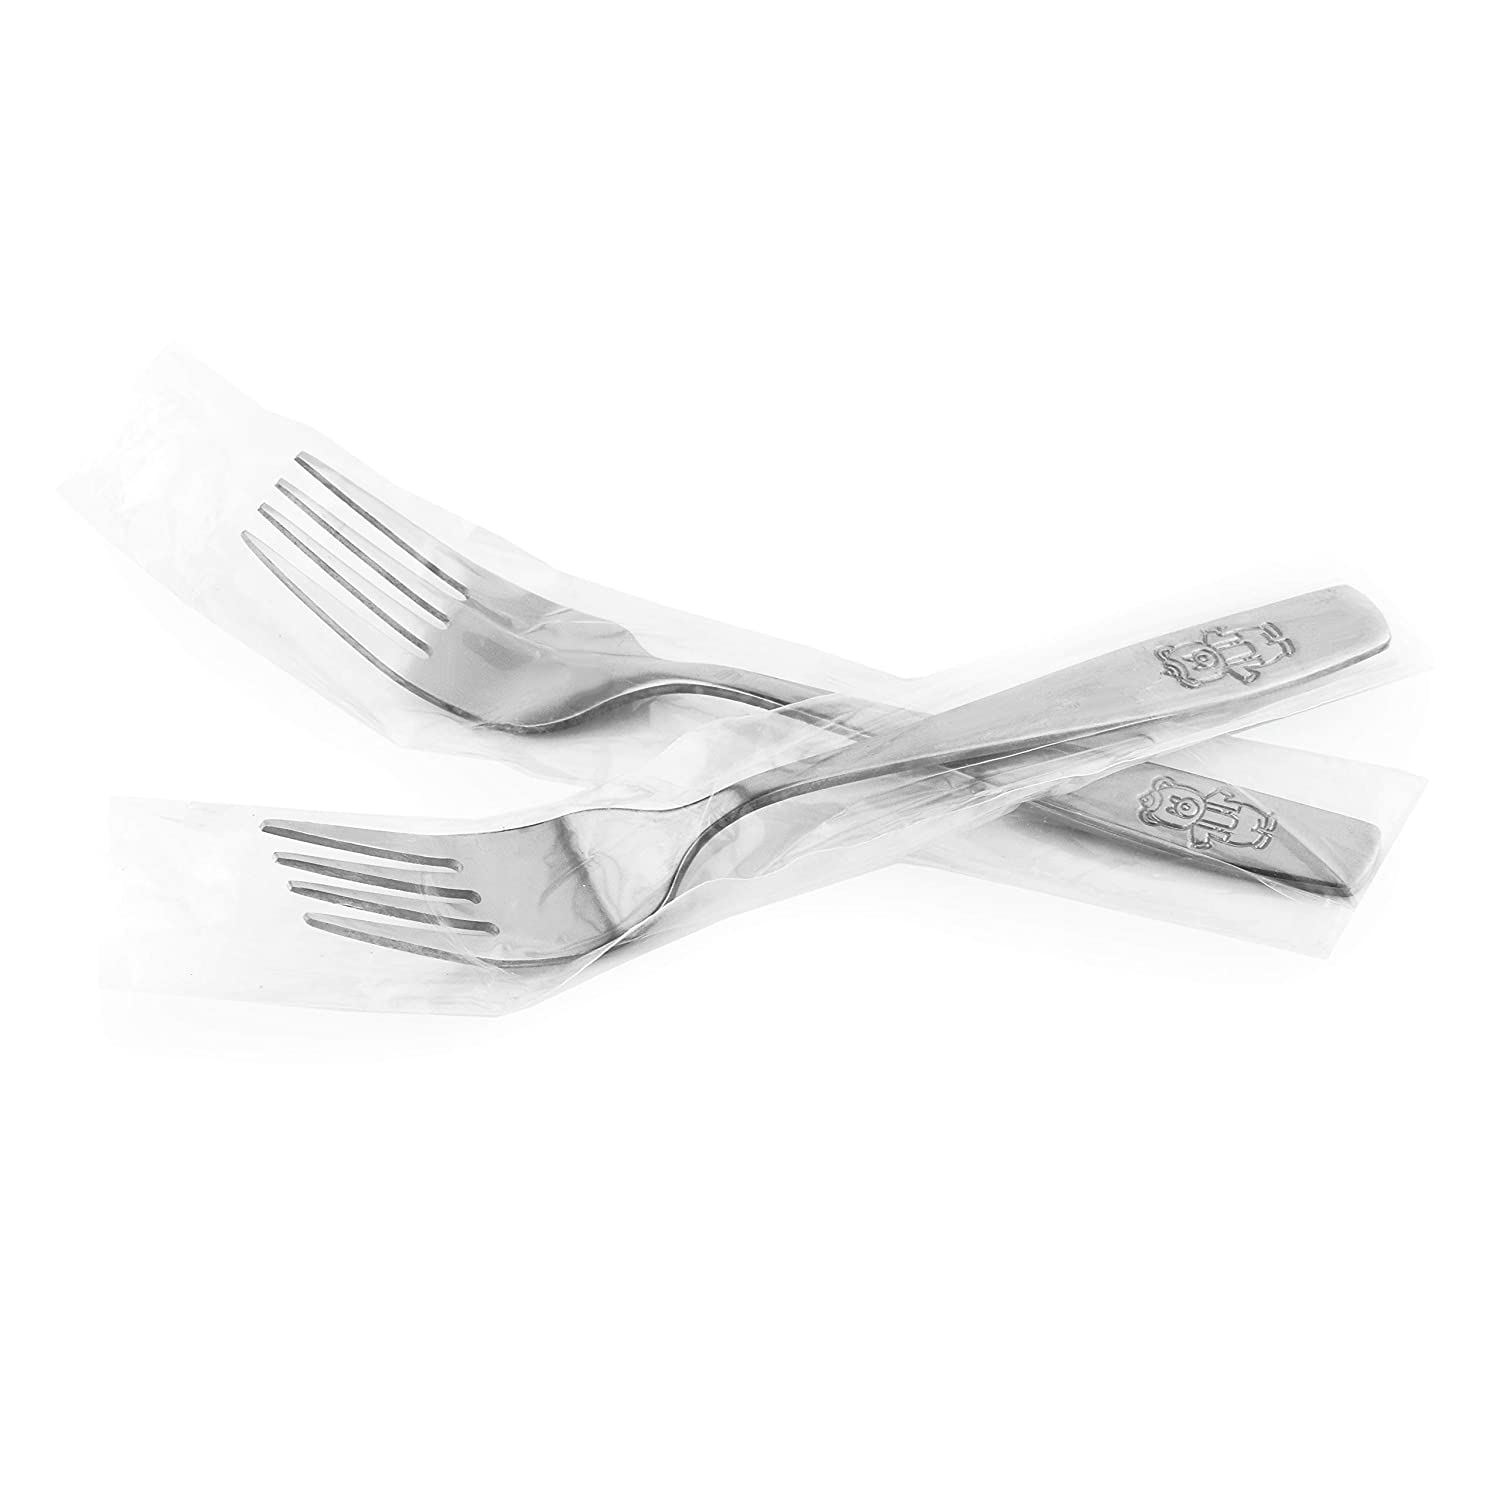 Kids Silverware Child and Toddler Safe Flatware Ideal for Home and Preschools 9 Piece Stainless Steel Kids Forks Kids Cutlery Kids Utensil Set Includes A Total of 9 Forks for Great Convenience